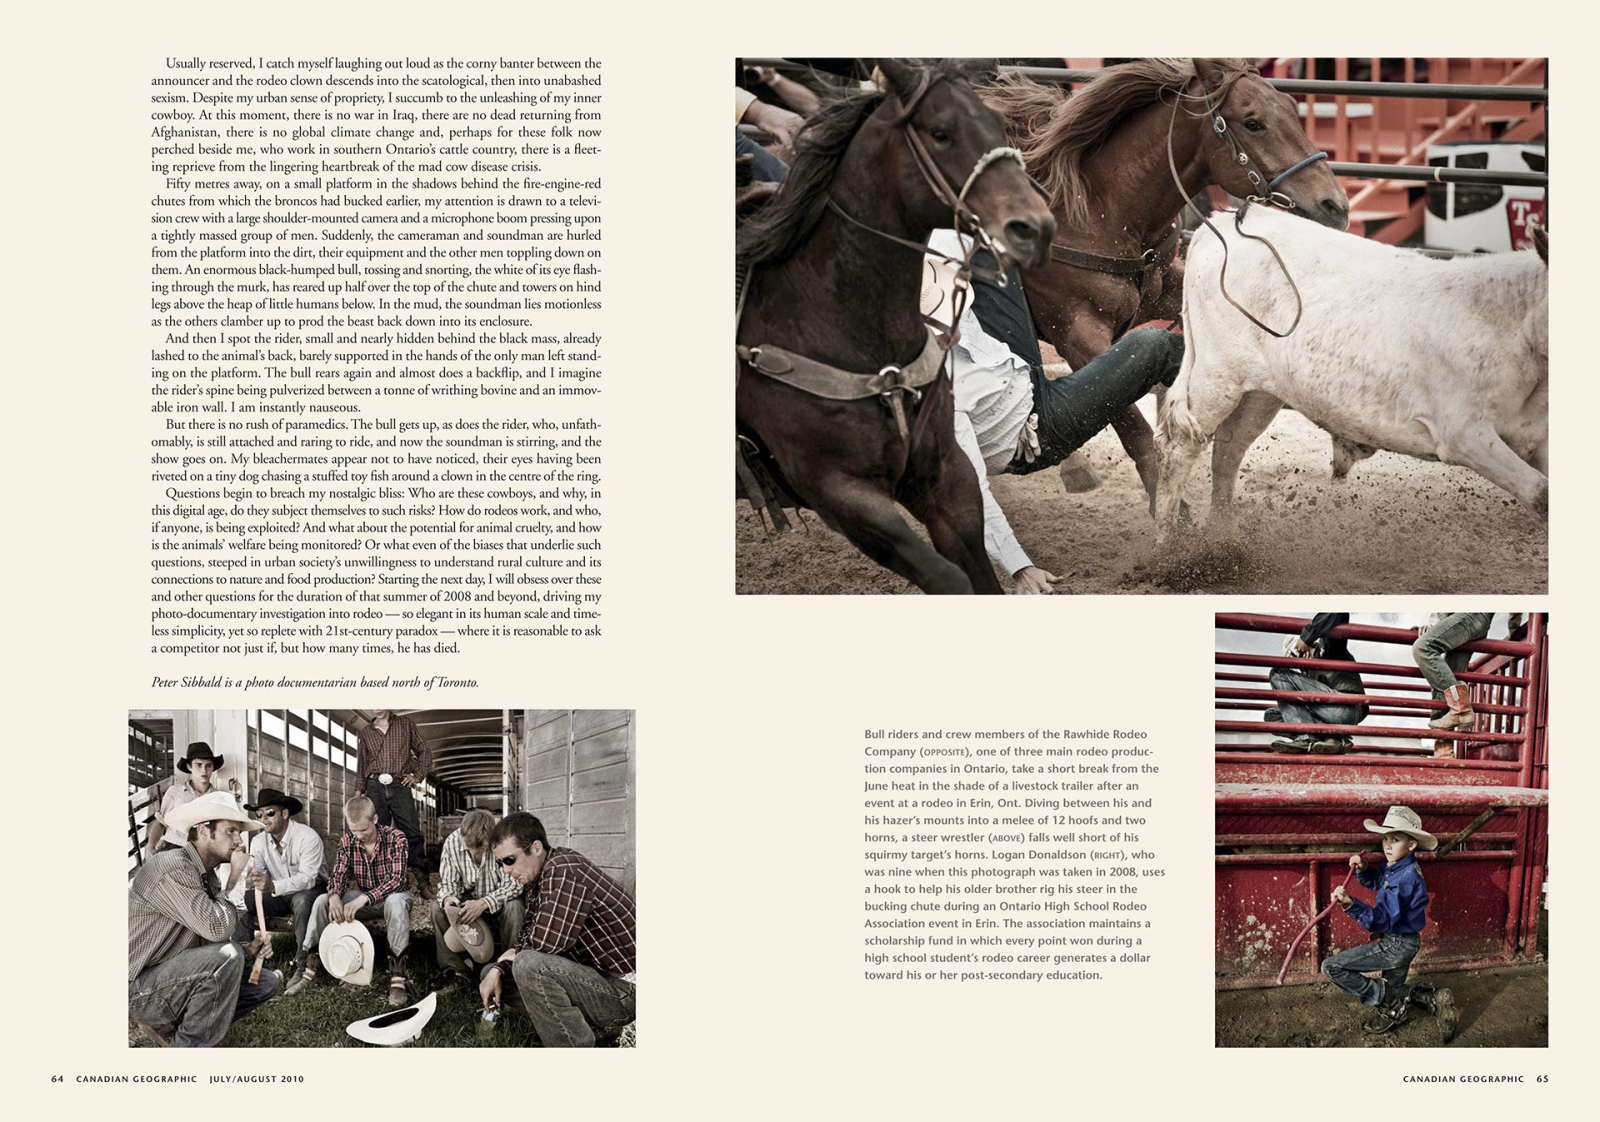 Art and Documentary Photography - Loading 009_CanGeoSemiFinalLayout-Rodeo-3.jpg